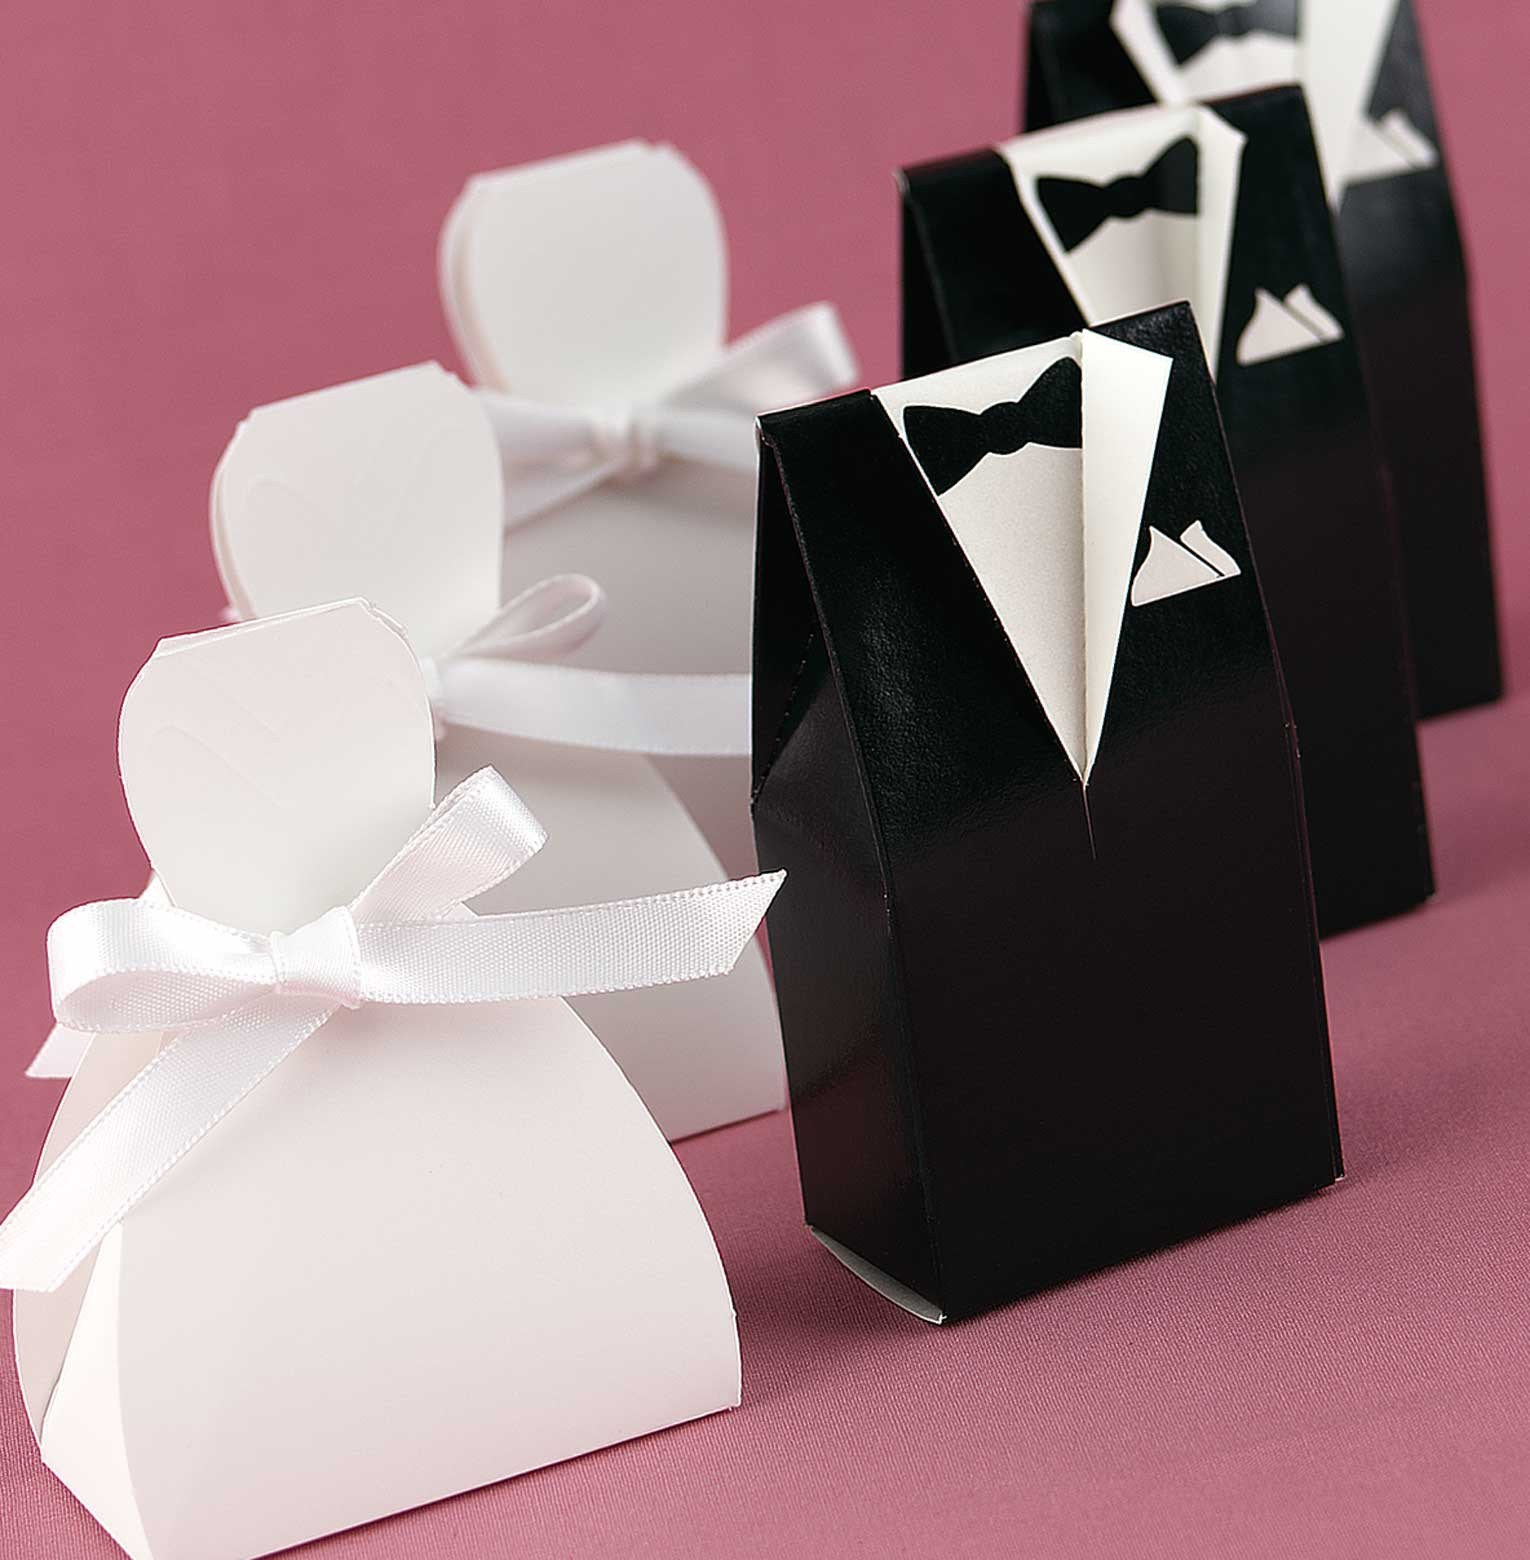 ... Wedding favors and gift ideas - quality favors and gifts for the